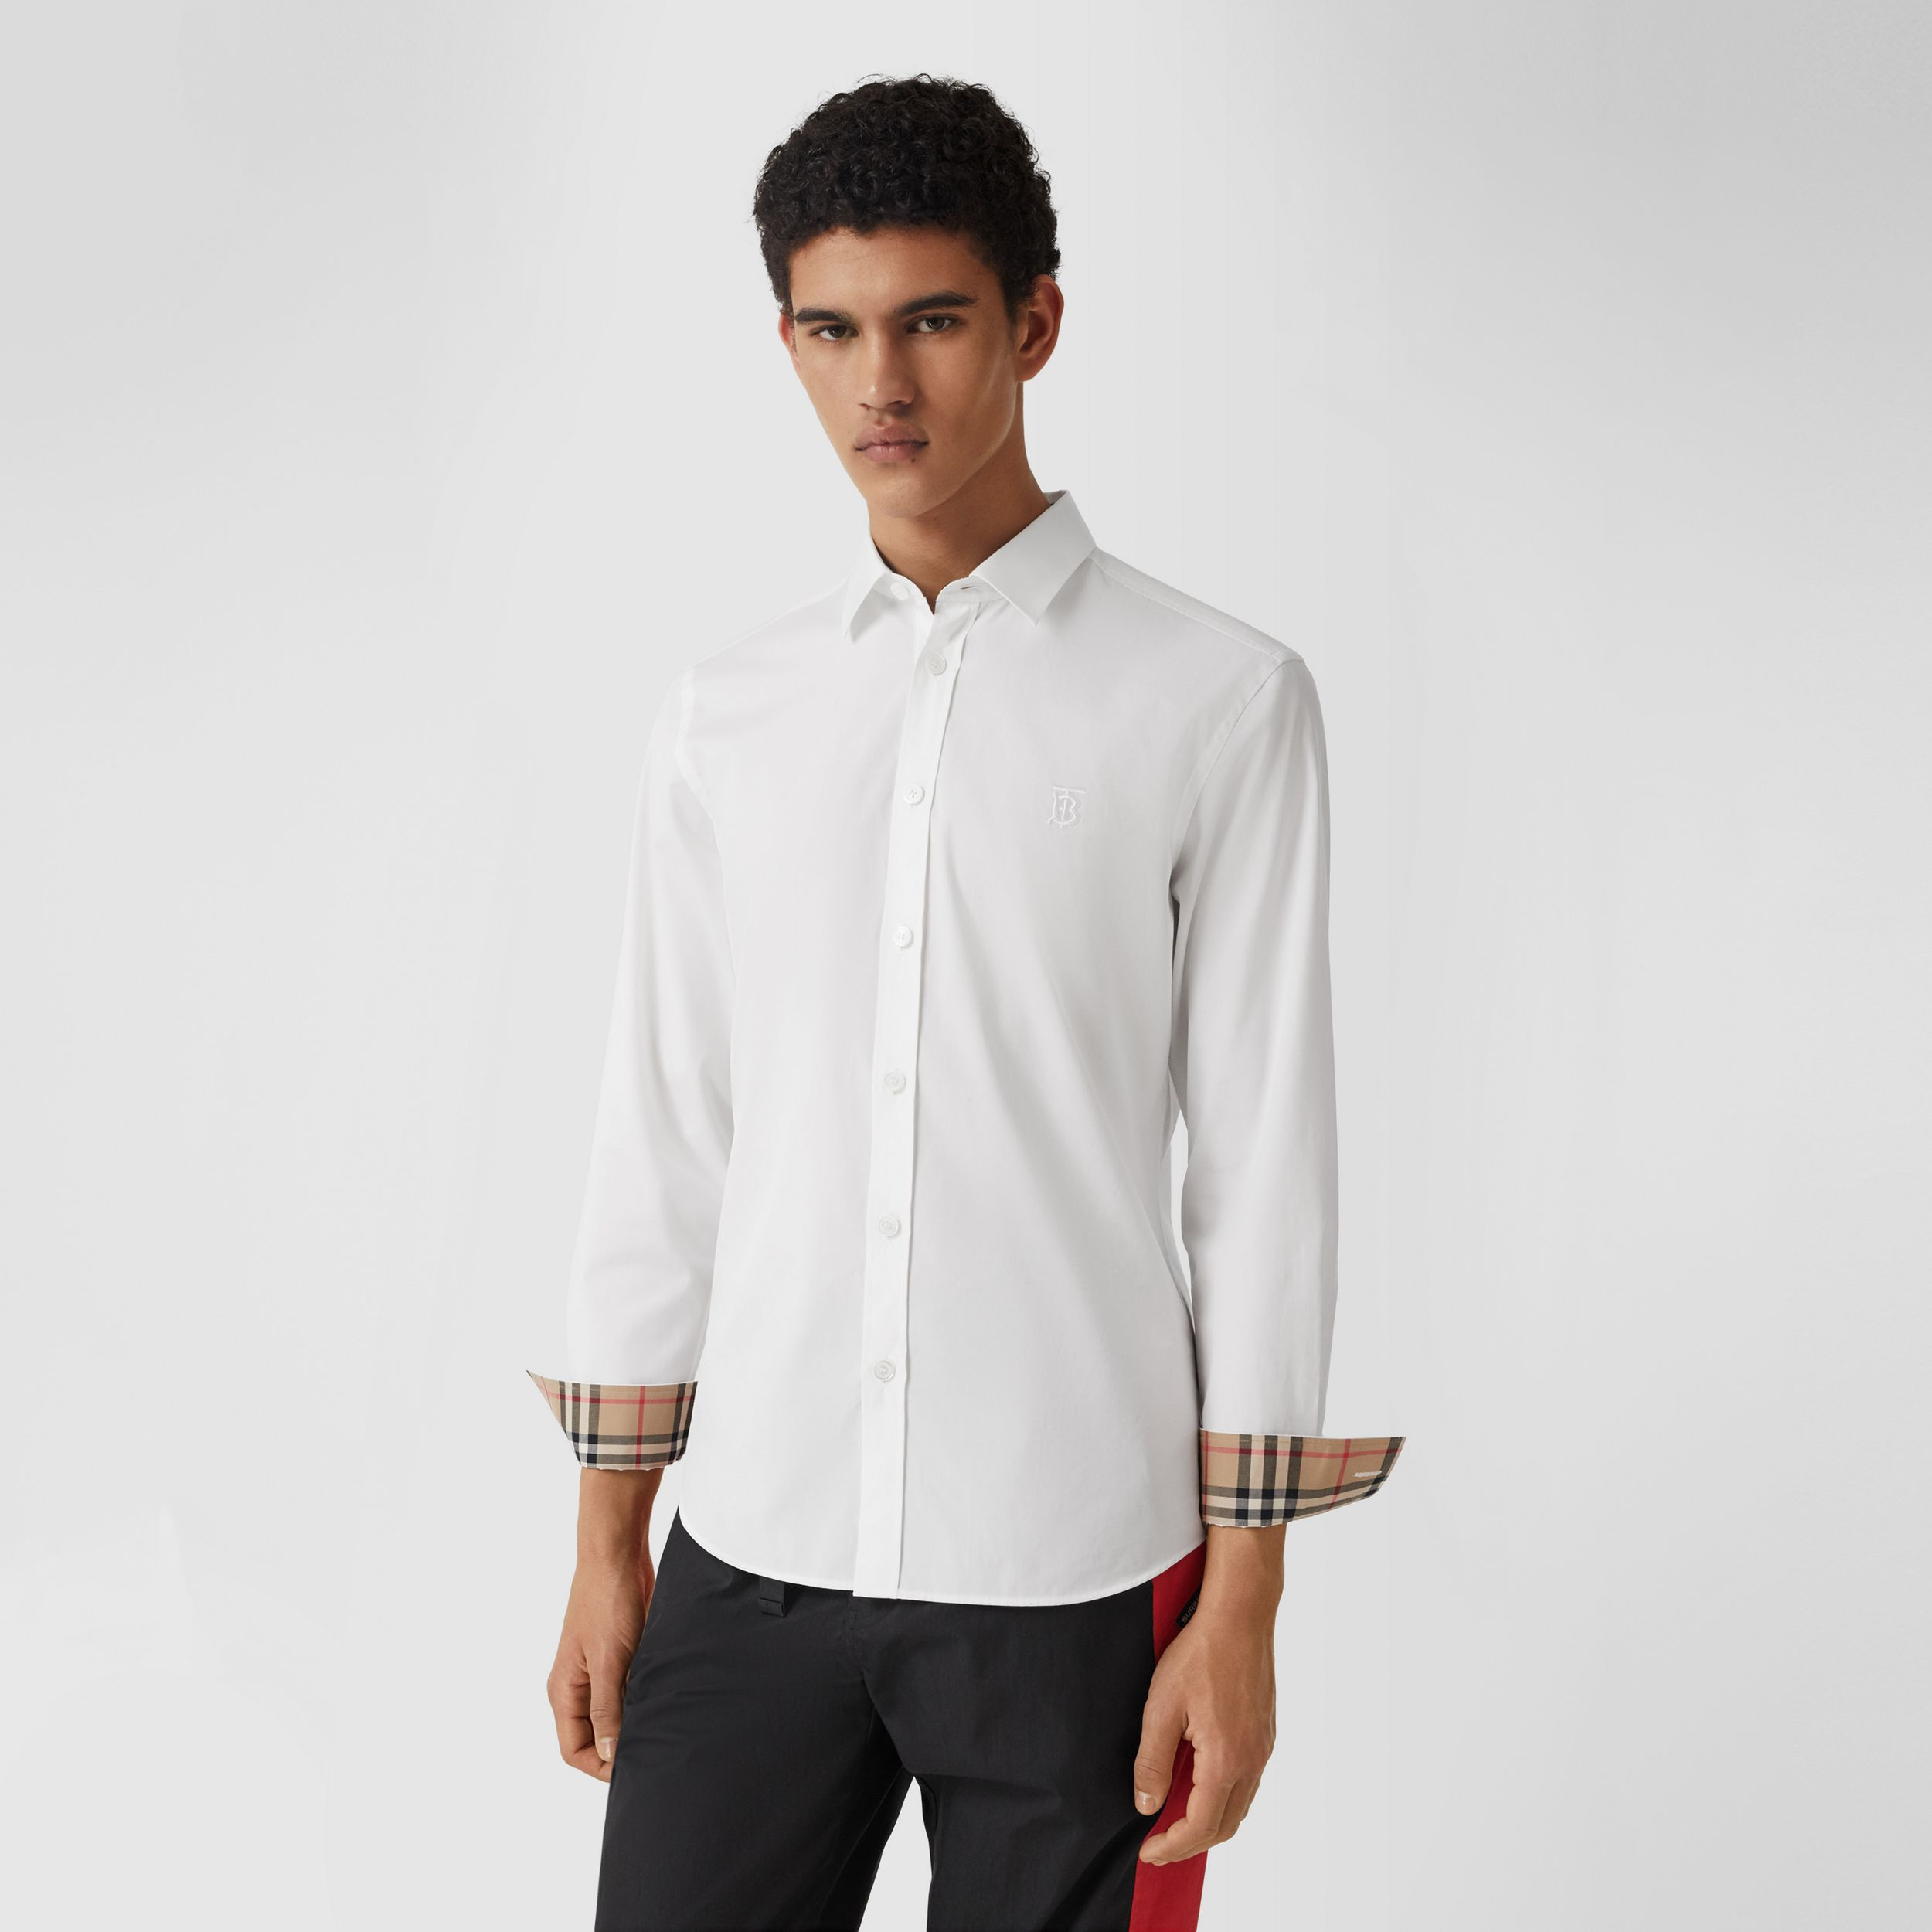 Slim Fit Monogram Motif Stretch Cotton Poplin Shirt in White - Men | Burberry - 1